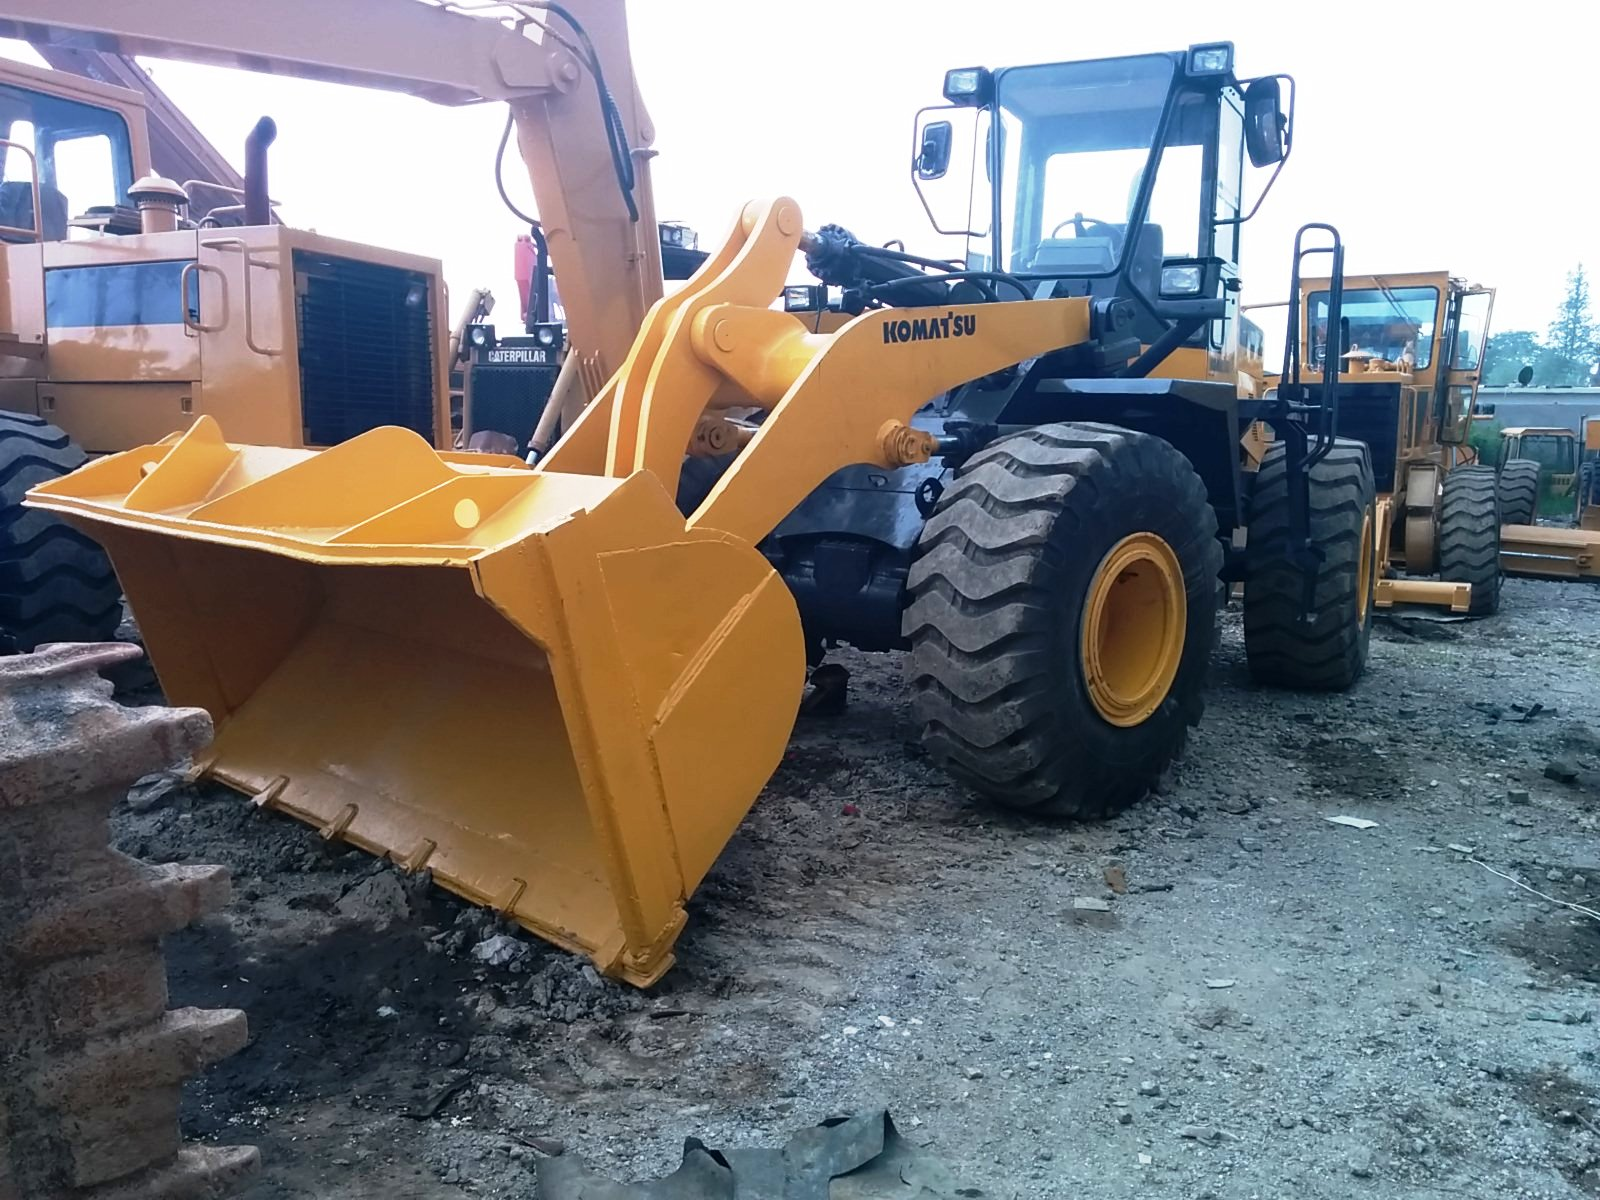 sell Used komatsu wheel loader mini loader shanghai china Supplier  Manufacturers  Exporters